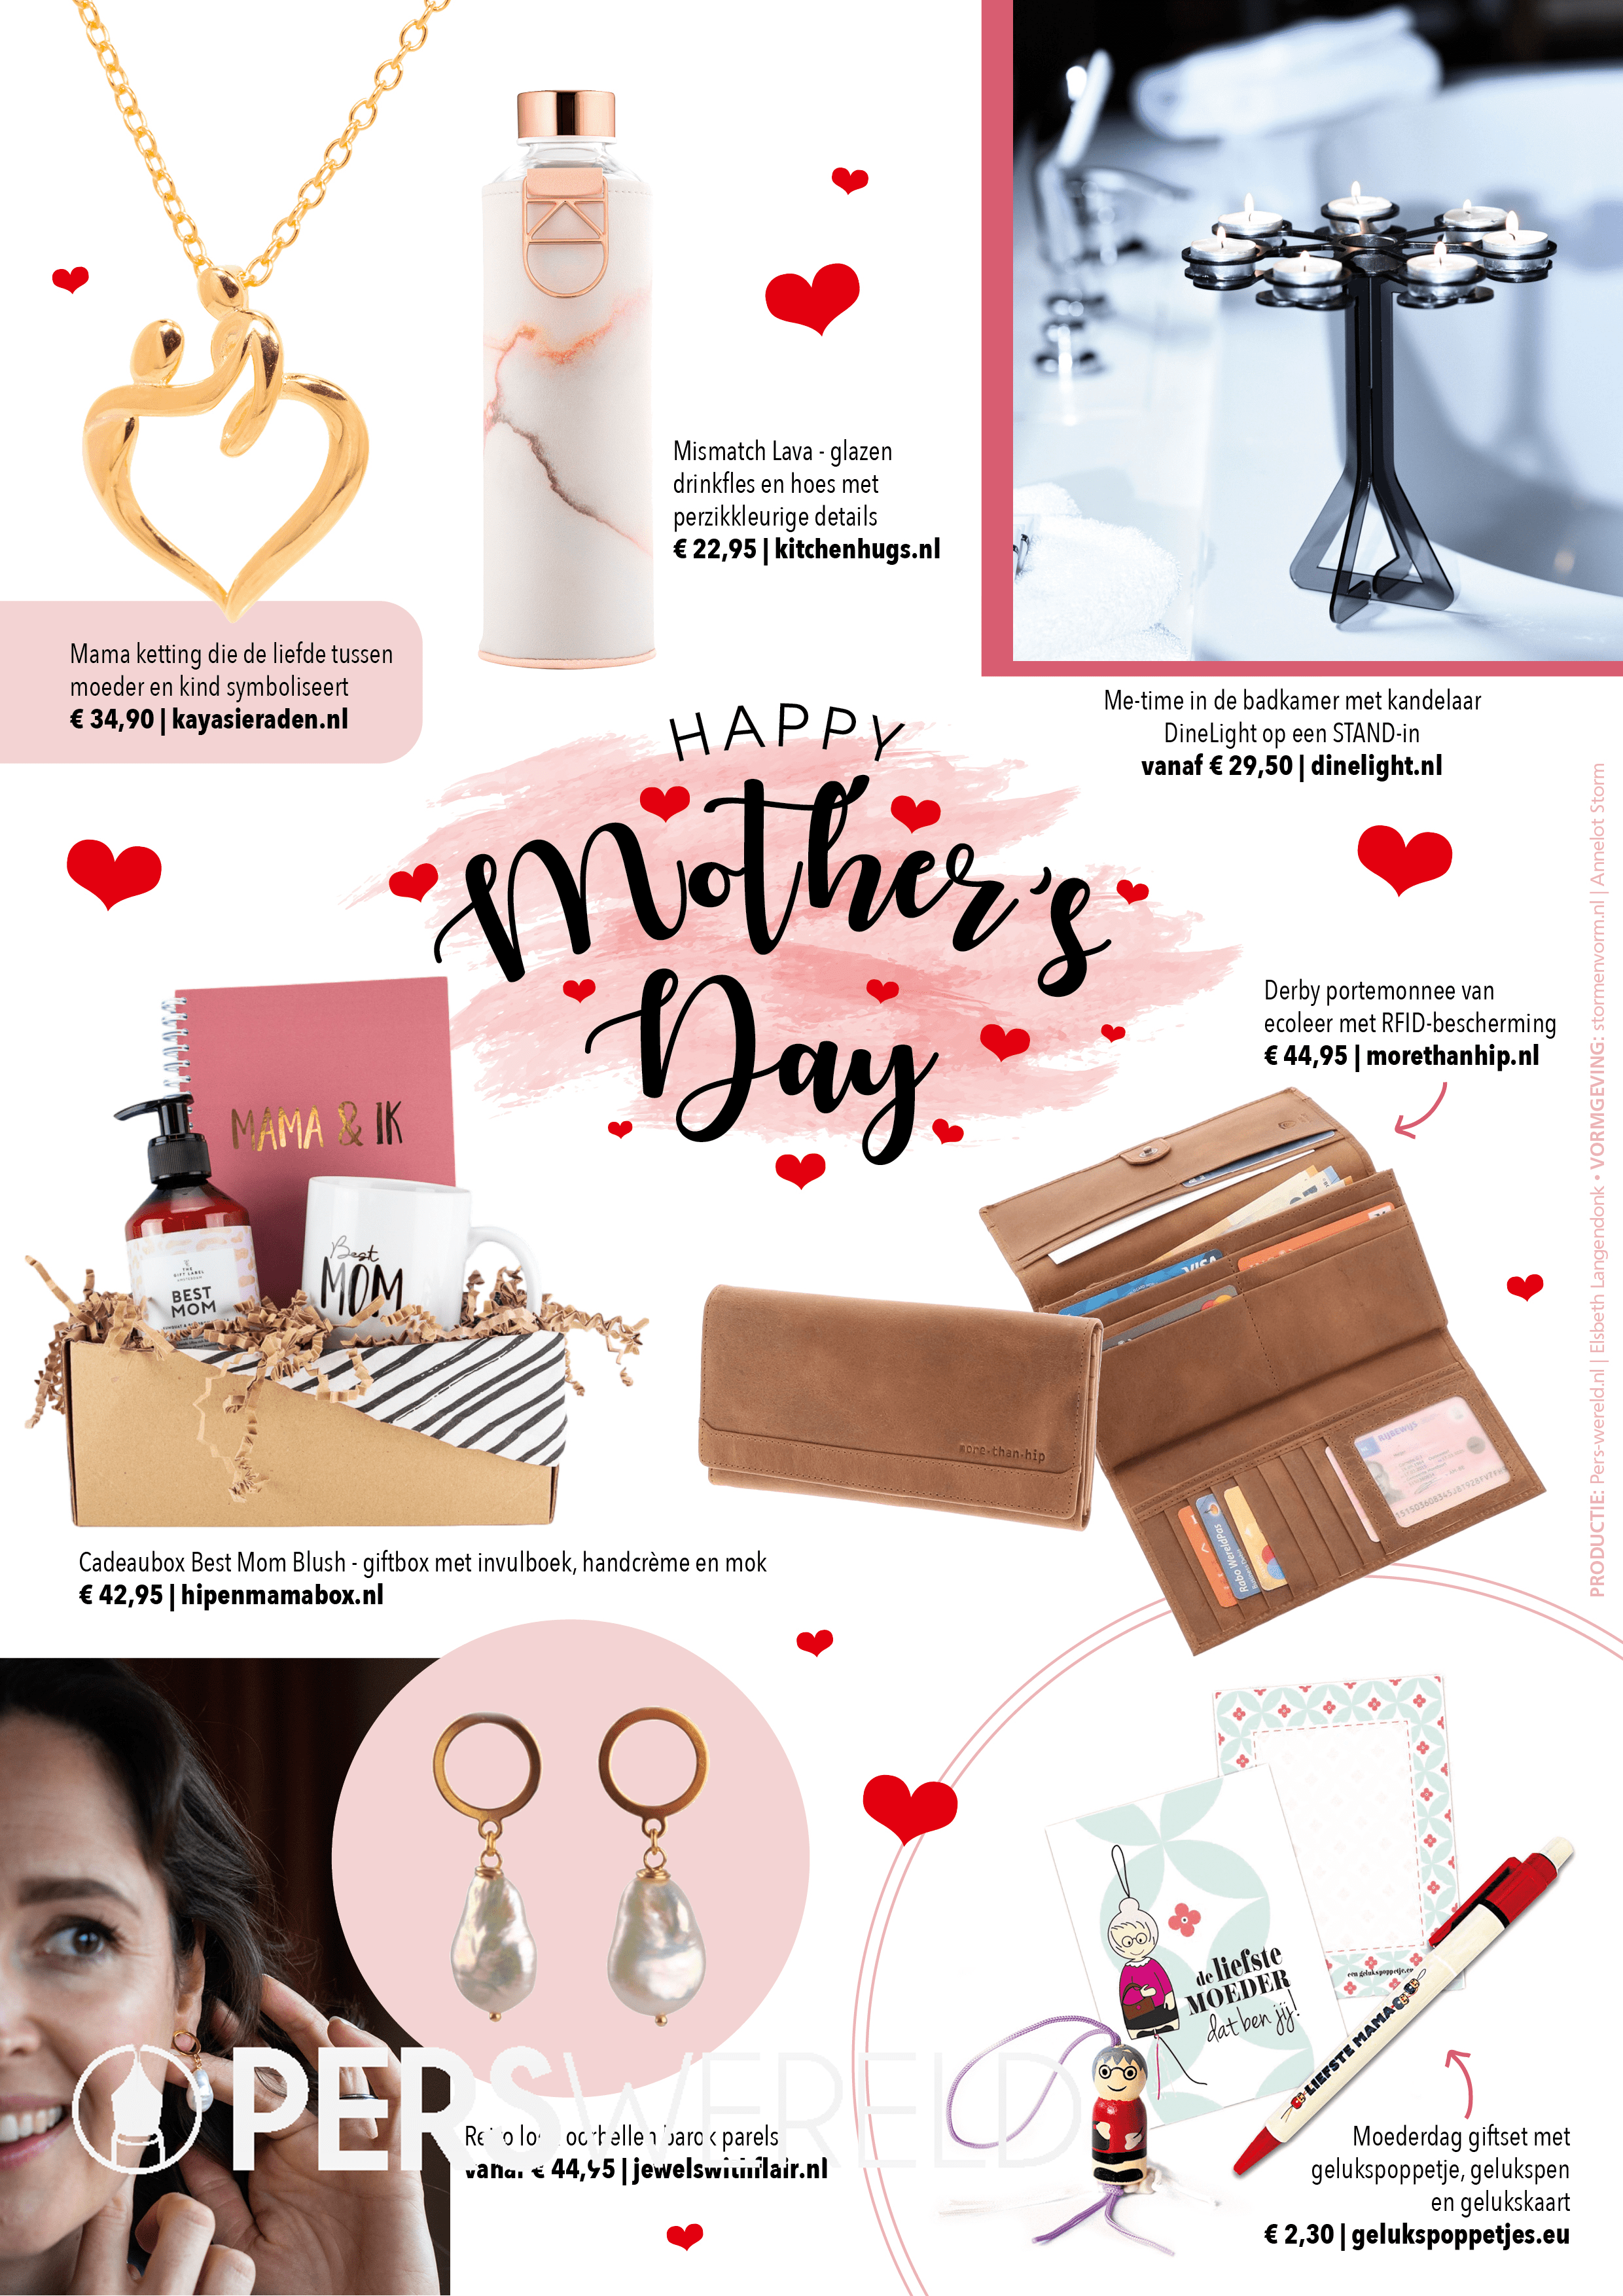 shopping-special-happy-mothersday-perswereld